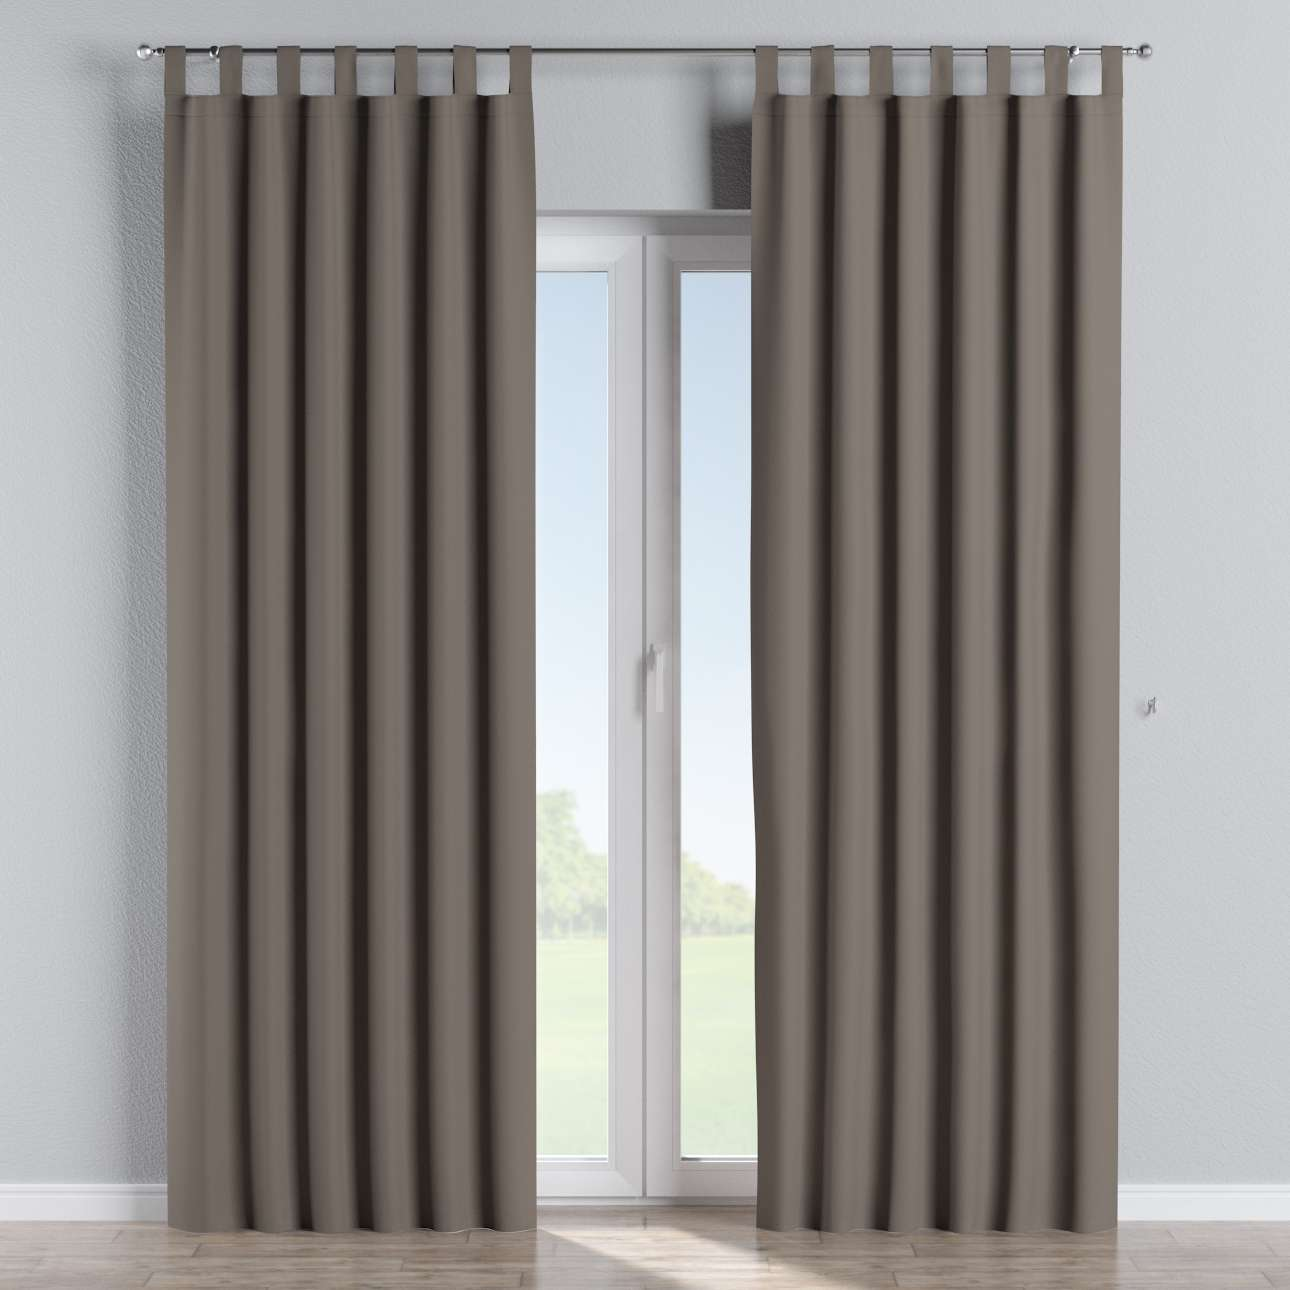 Blackout tab top curtains 140 x 260 cm (55 x 102 inch) in collection Blackout, fabric: 269-80